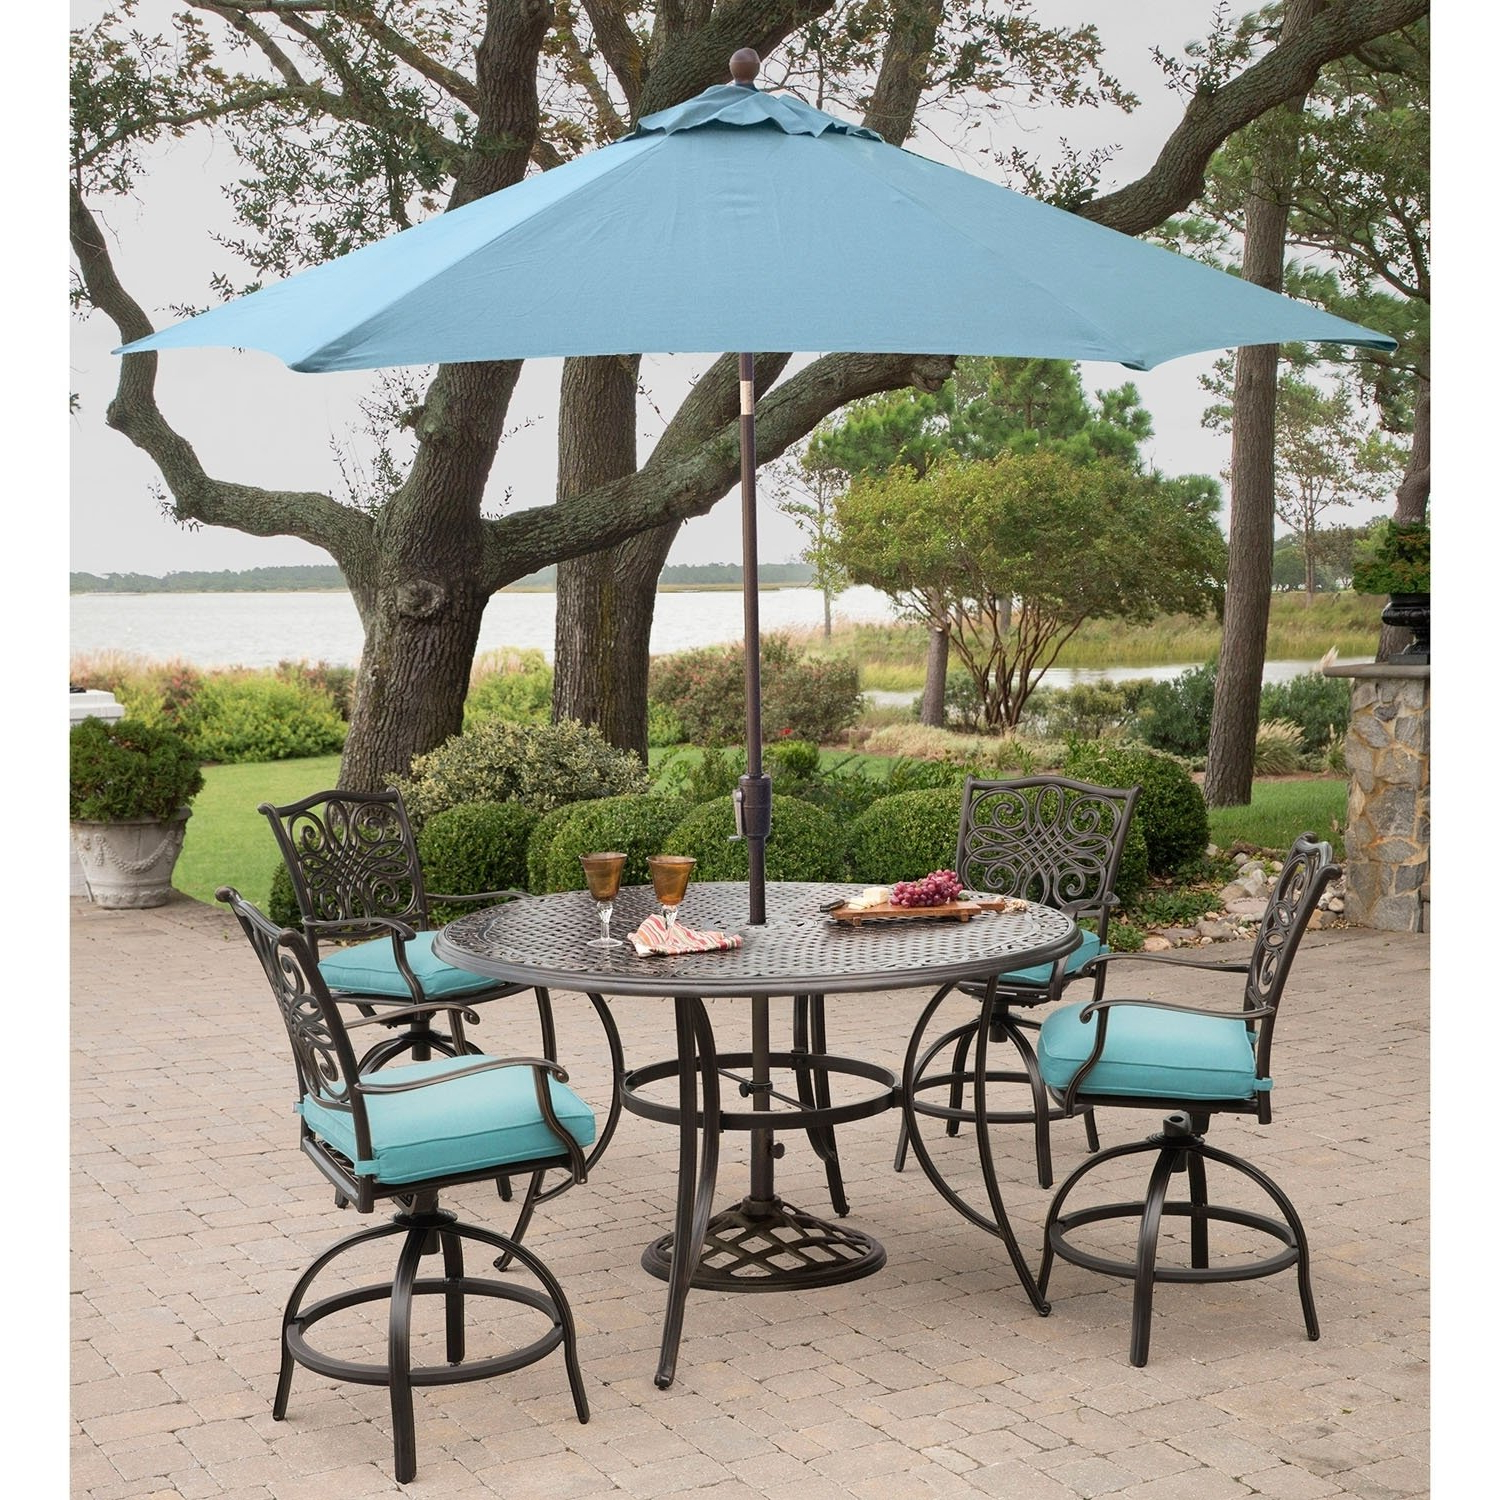 Favorite Traditions 5 Piece High Dining Set In Blue With 4 Swivel Chairs, A Throughout Cannock Market Umbrellas (View 8 of 20)